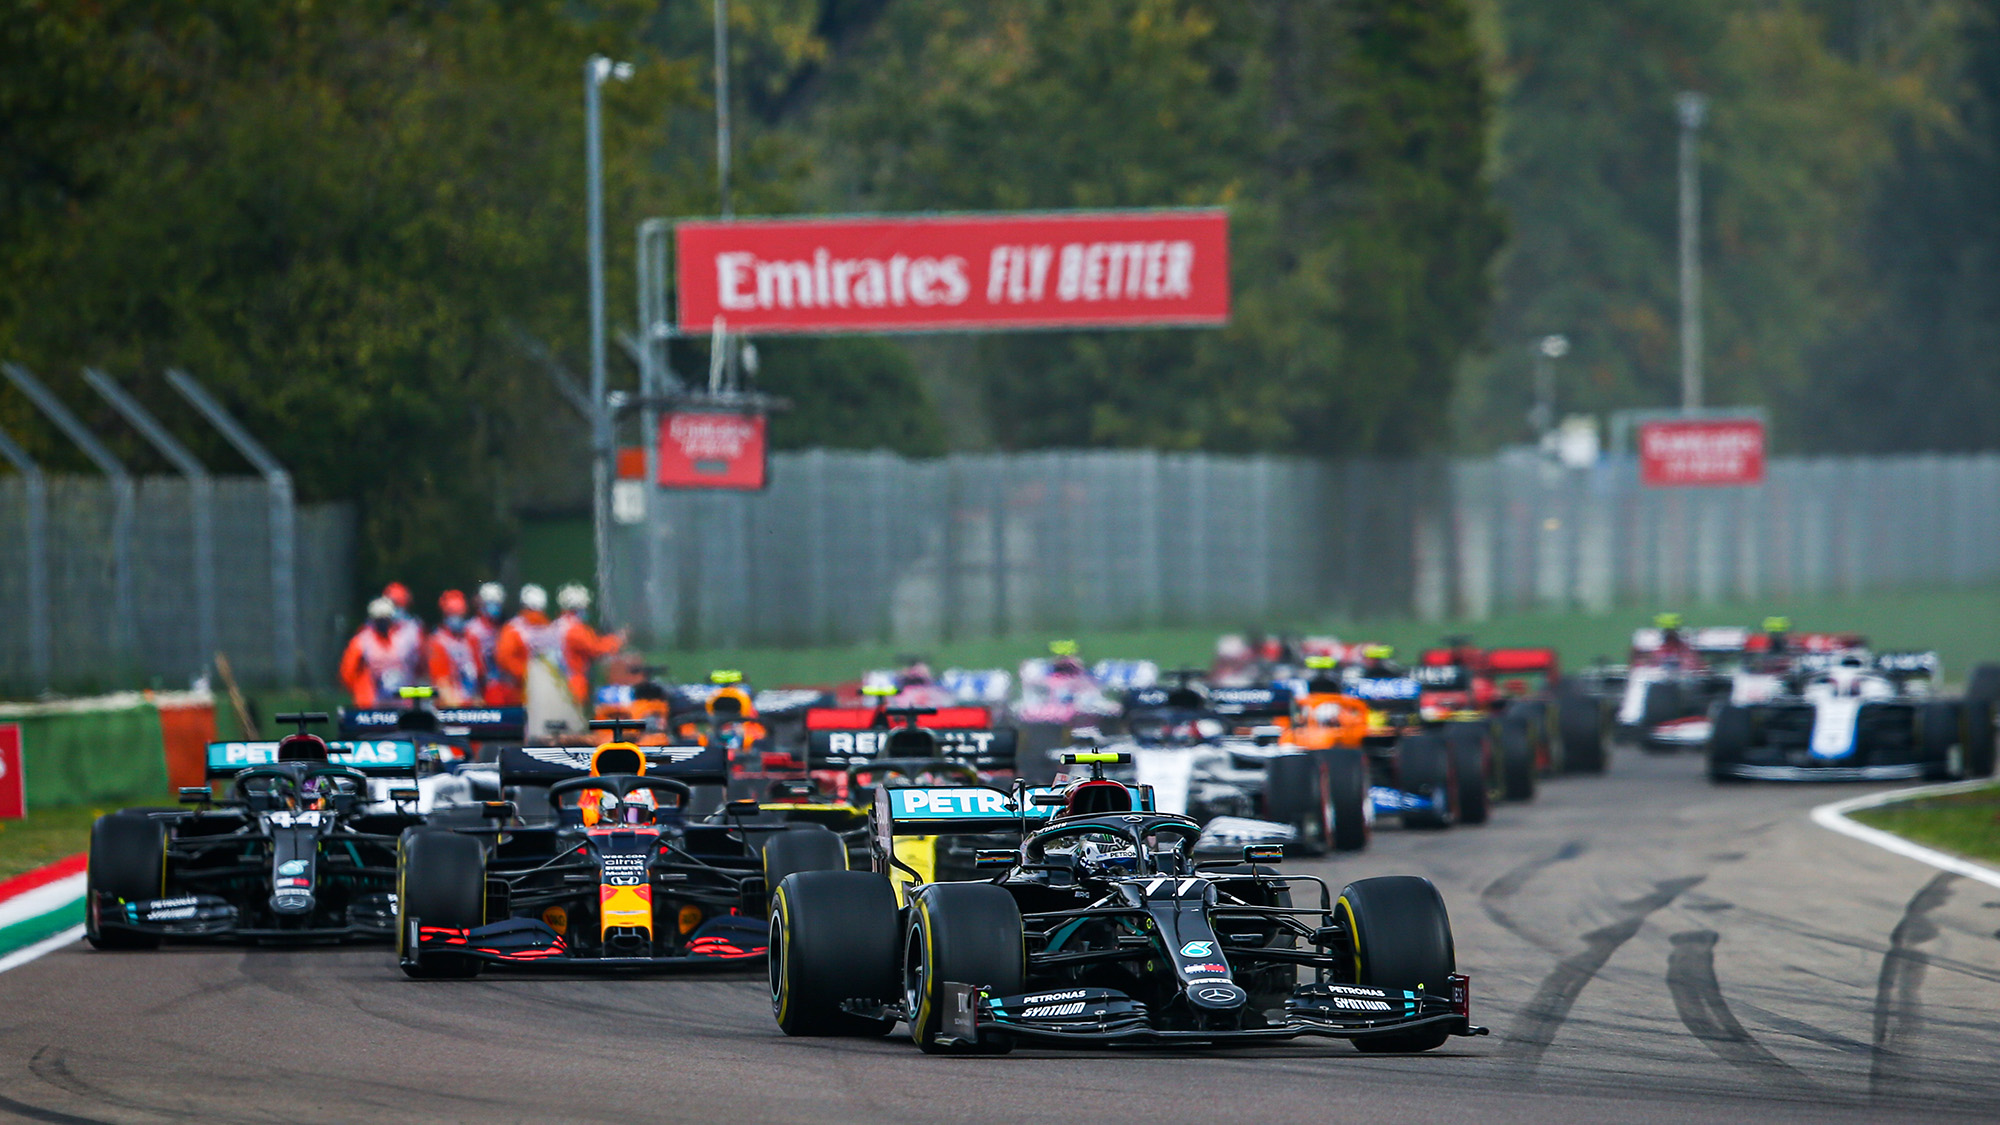 Valtteri Bottas leads at the start of the 2020 F1 Emilia Romagna Grand Prix at Imola